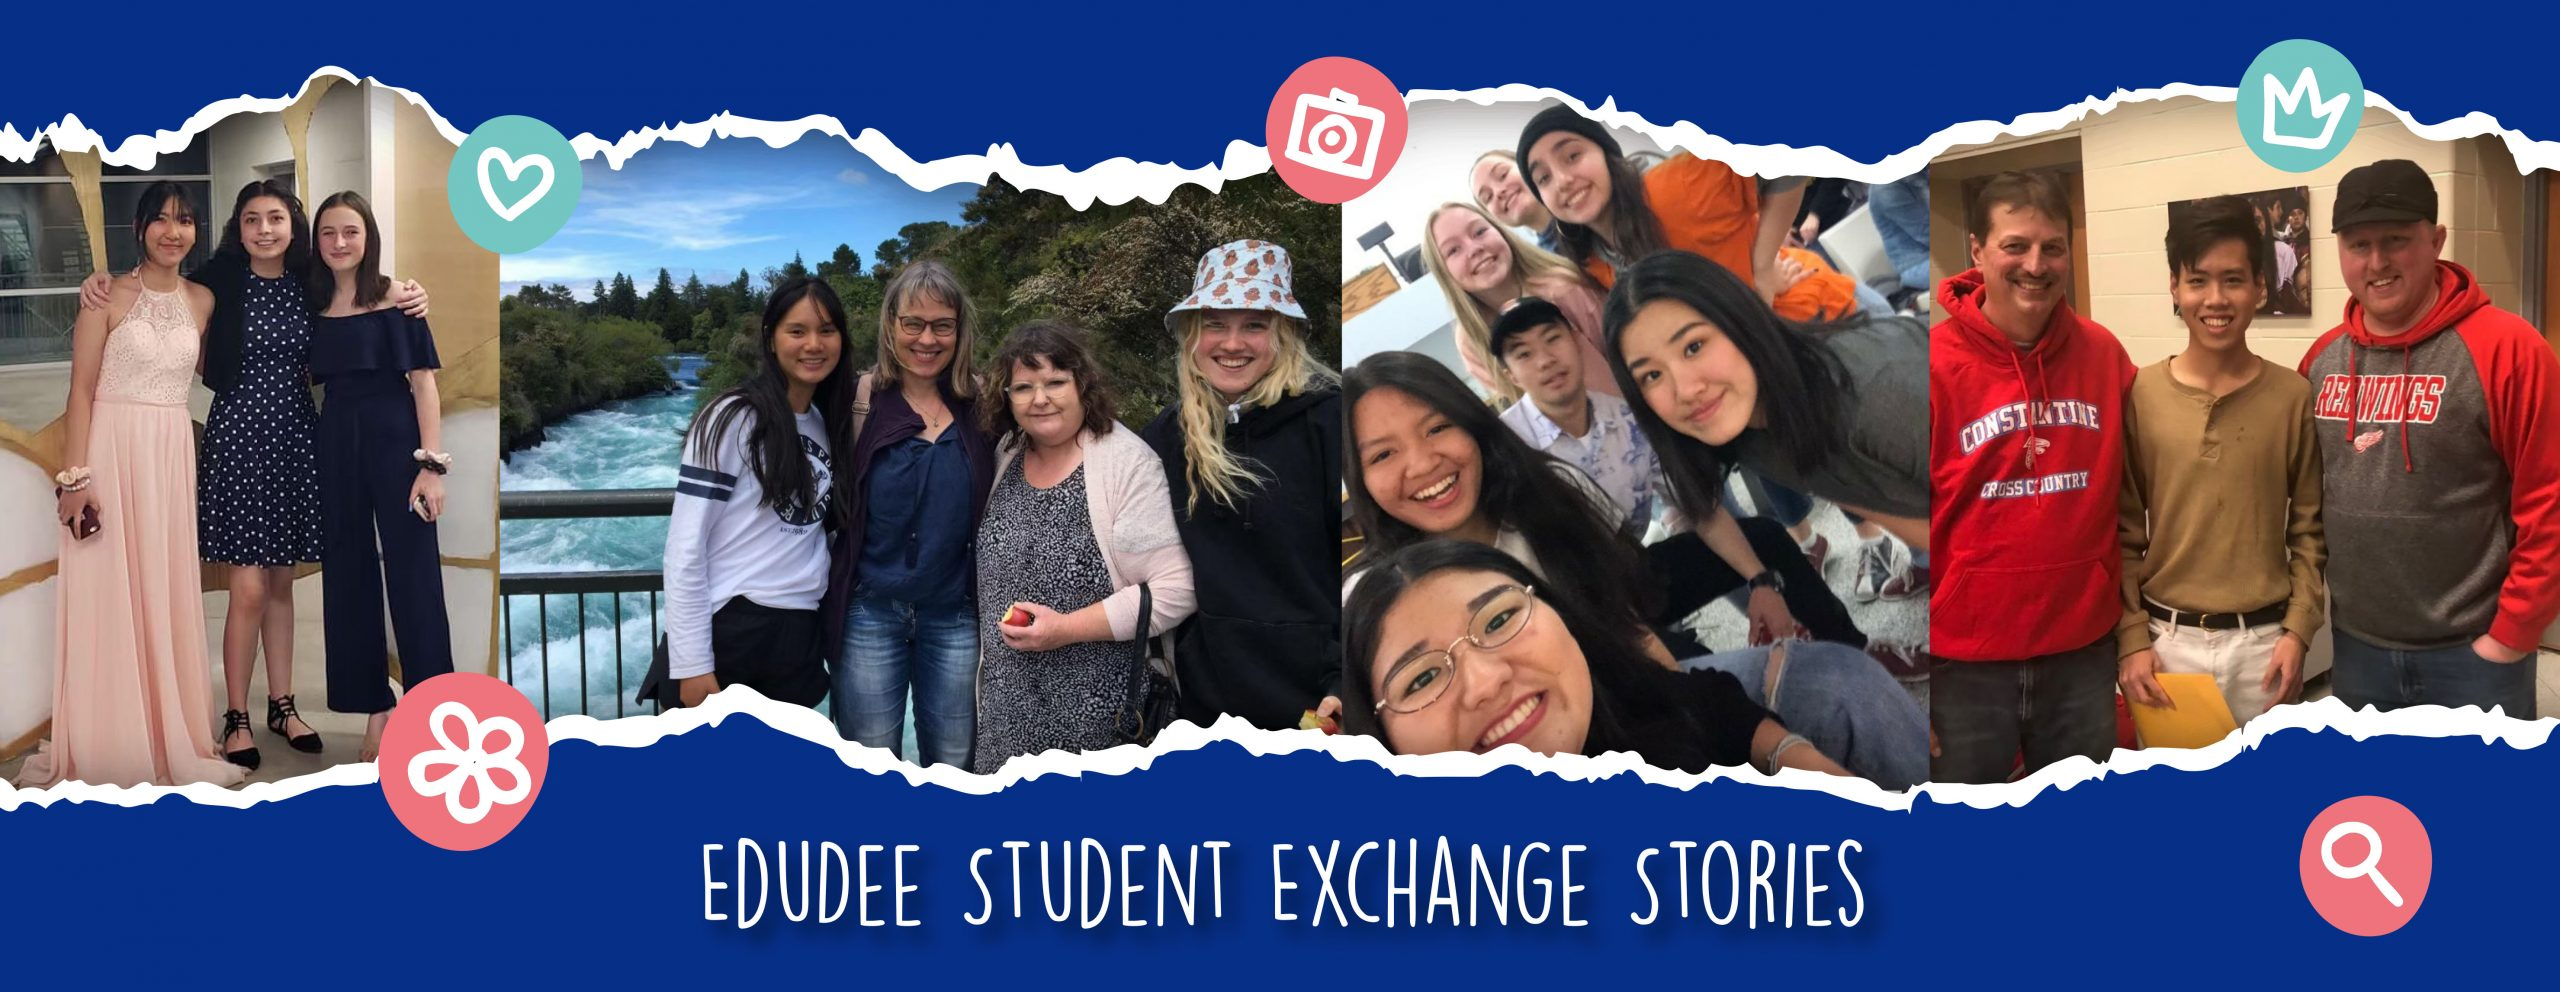 EduDee Exchange Stories-1